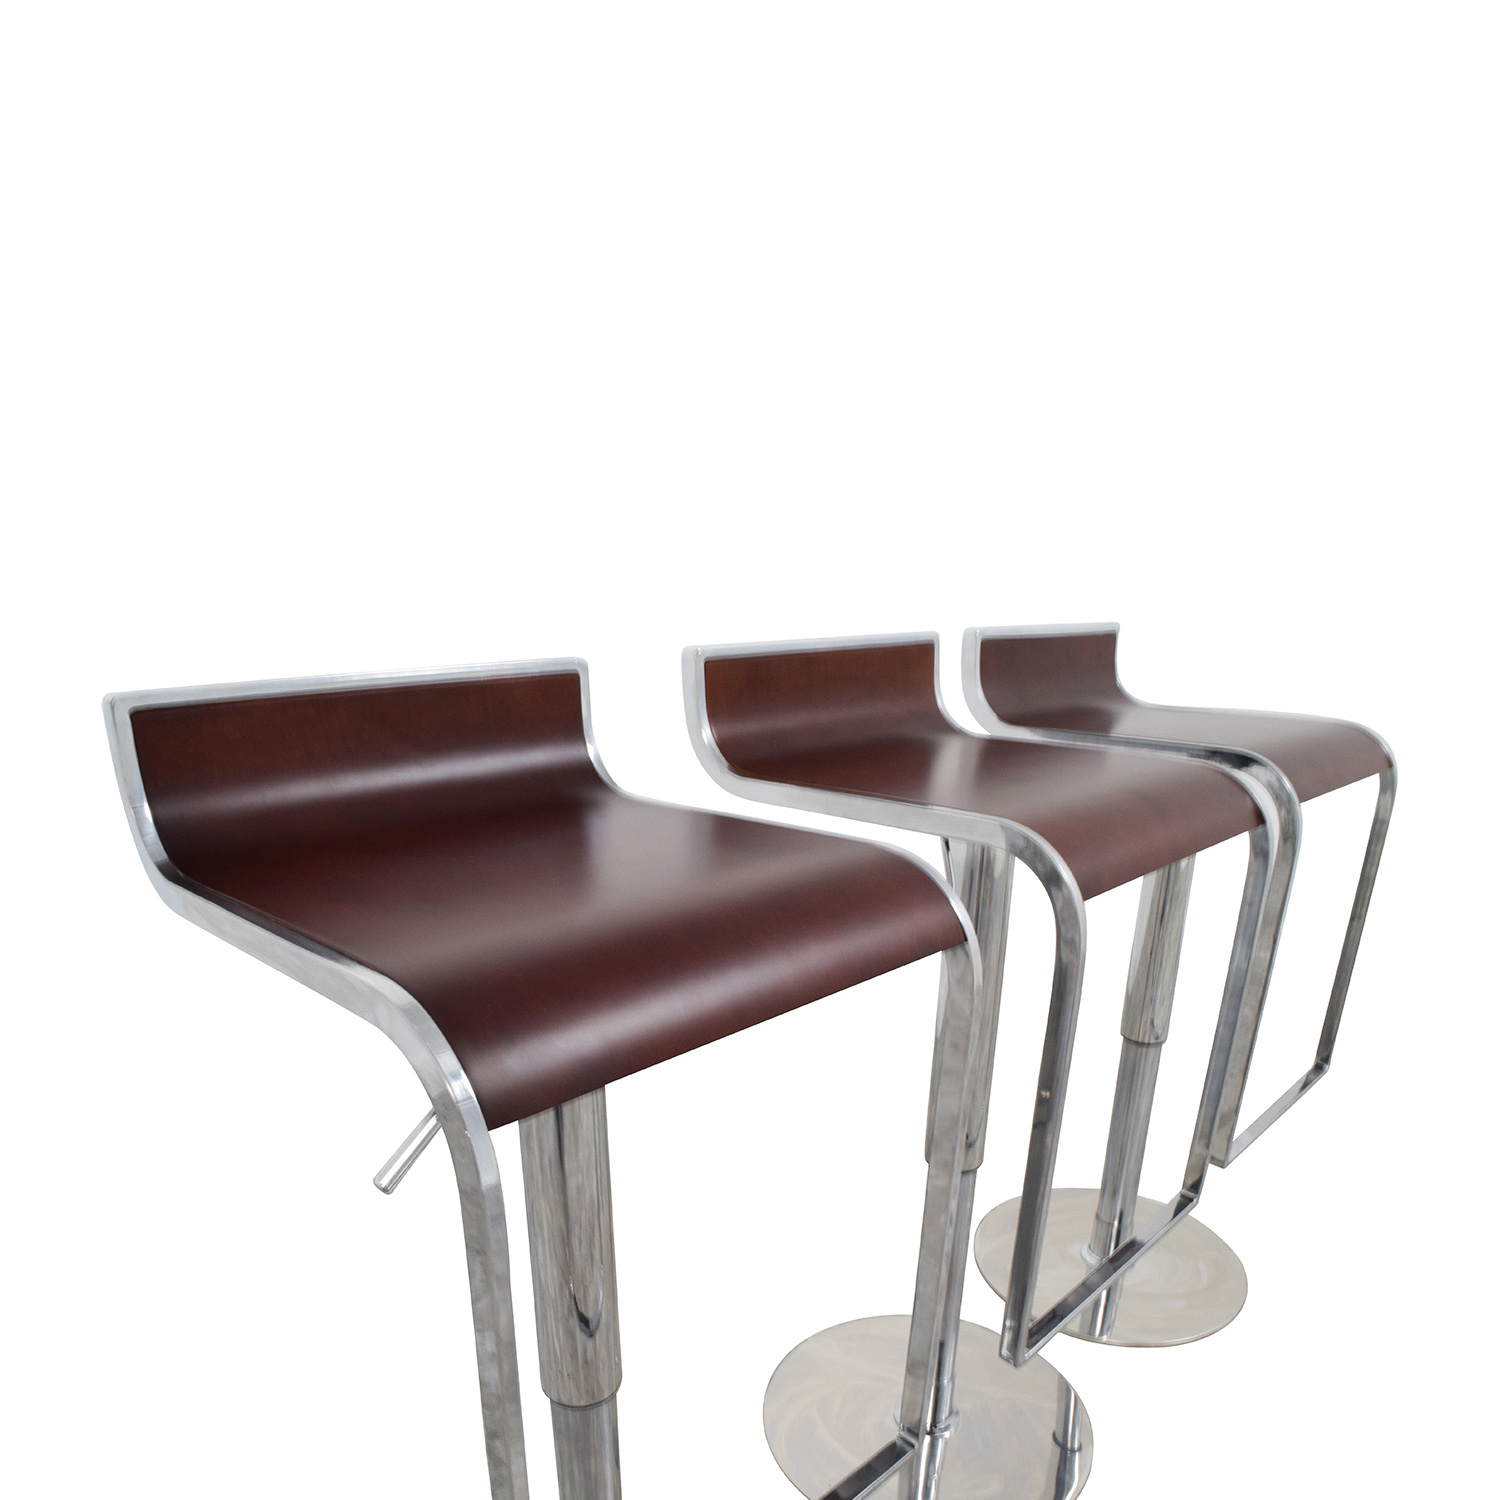 InMod InMod Forest Brown Adjustable Bar Counter Stool dimensions